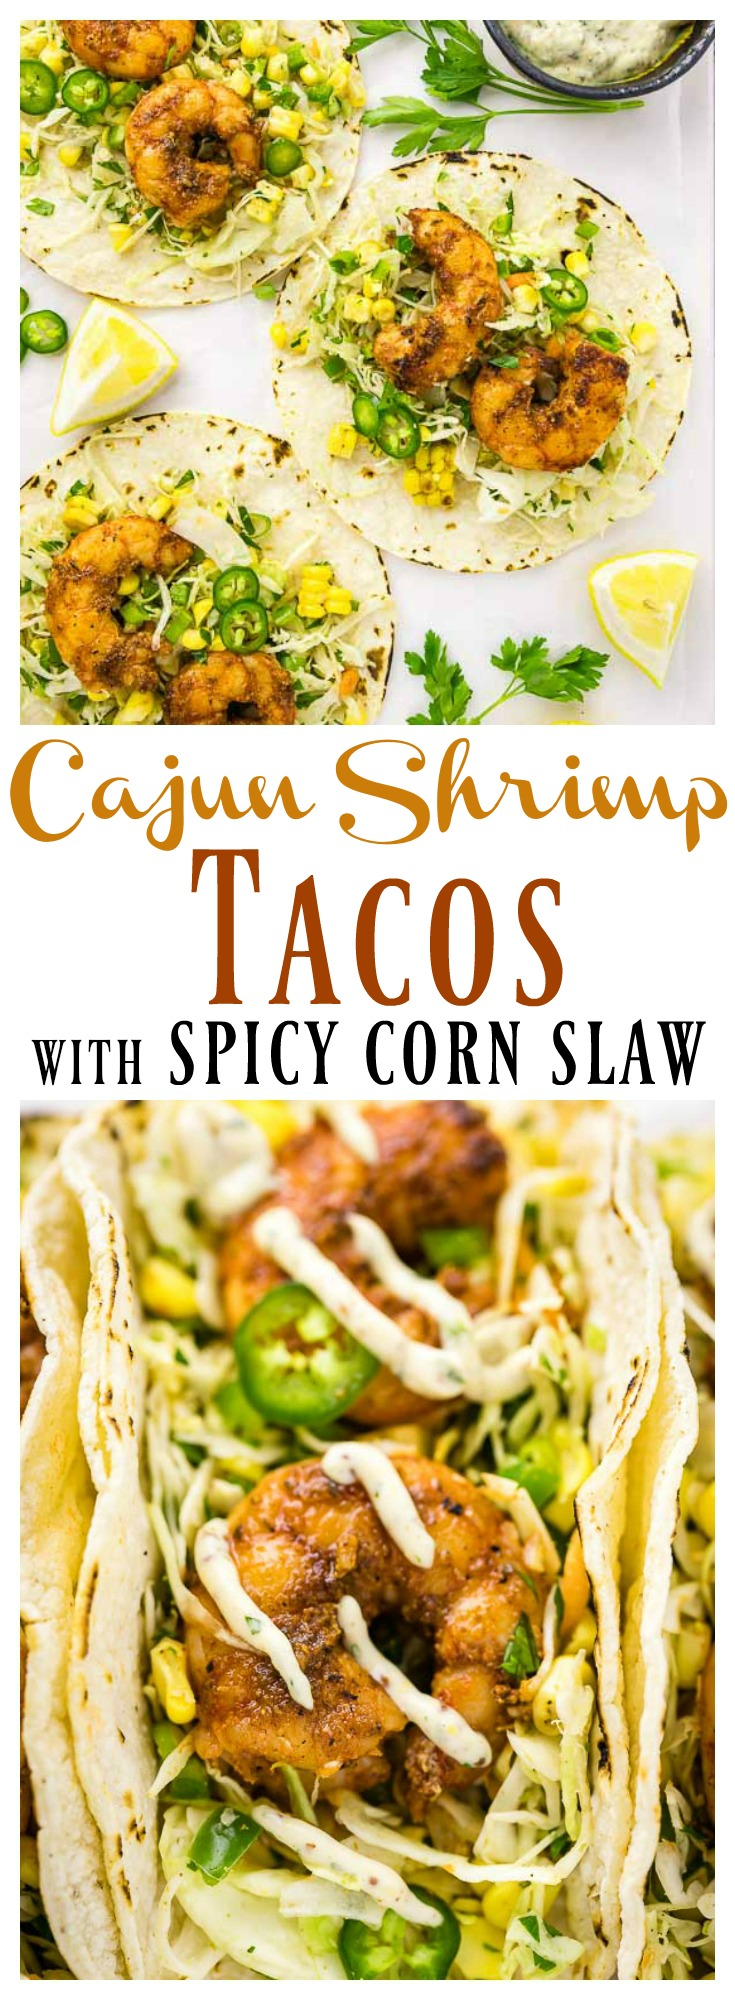 Cajun Shrimp Tacos with Spicy Corn Slaw & Remoulade